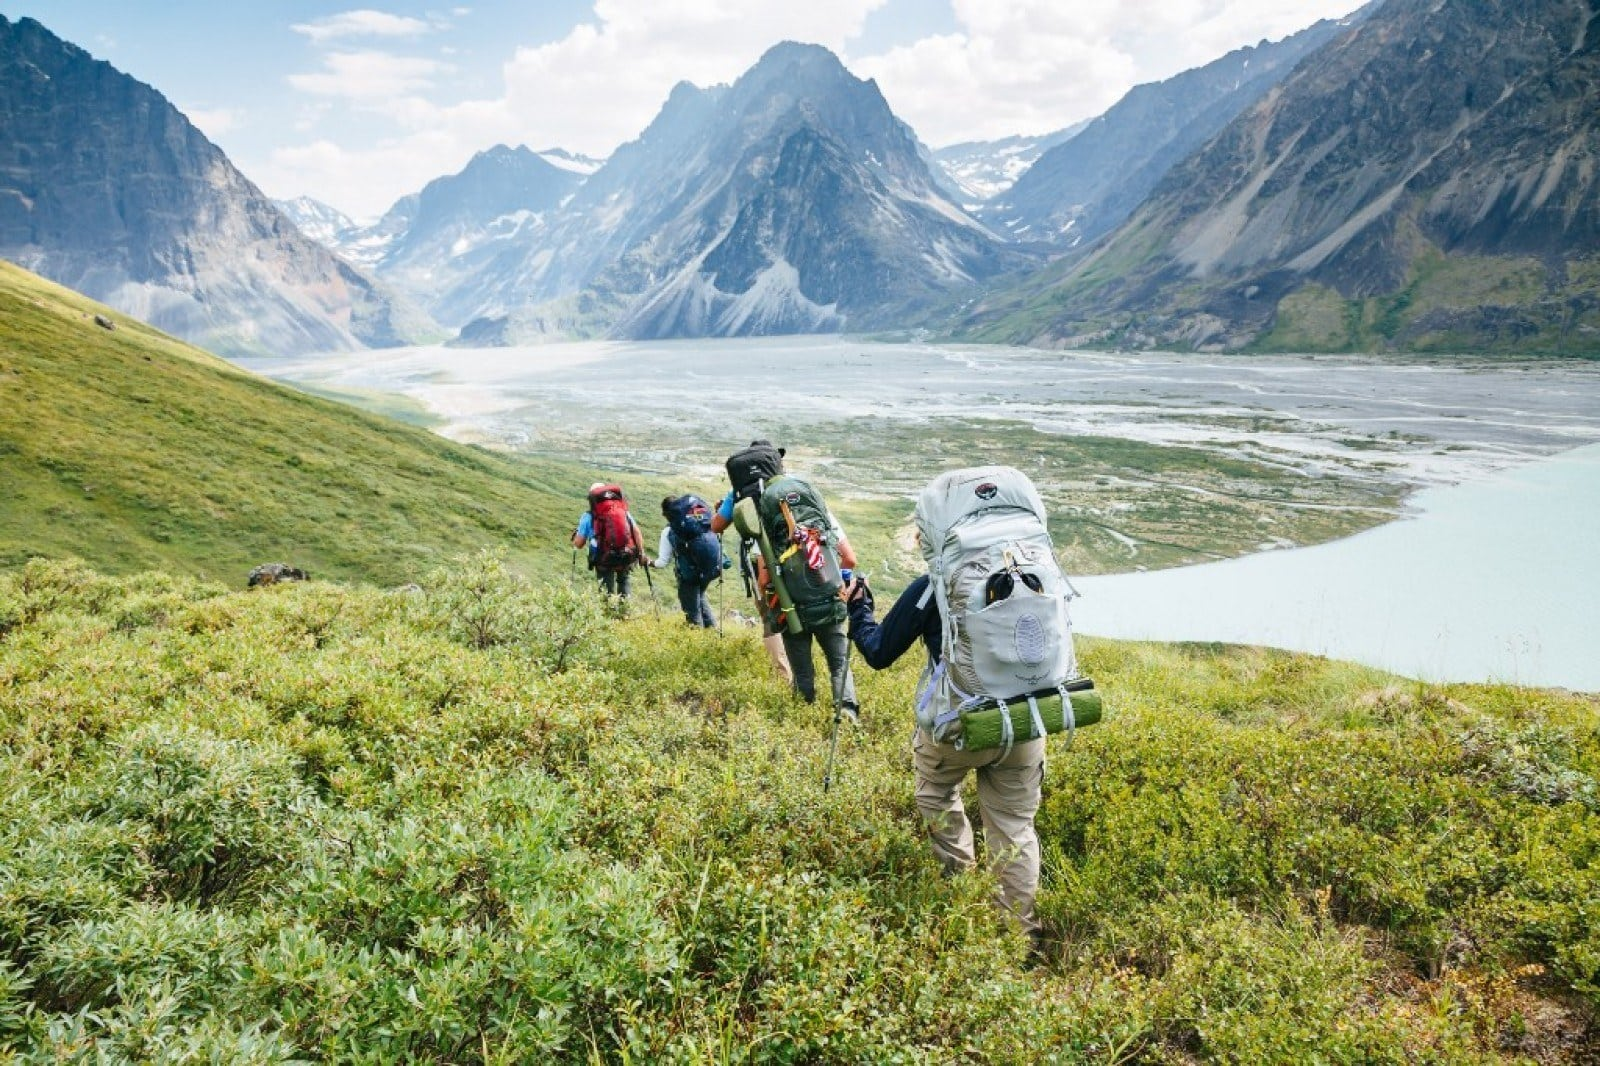 Alaska Wilderness Backpacking Trip // Want to improve your outdoor skills, see incredible places & meet fun people? Join one of Bearfoot Theory's group adventure tours in 2017!